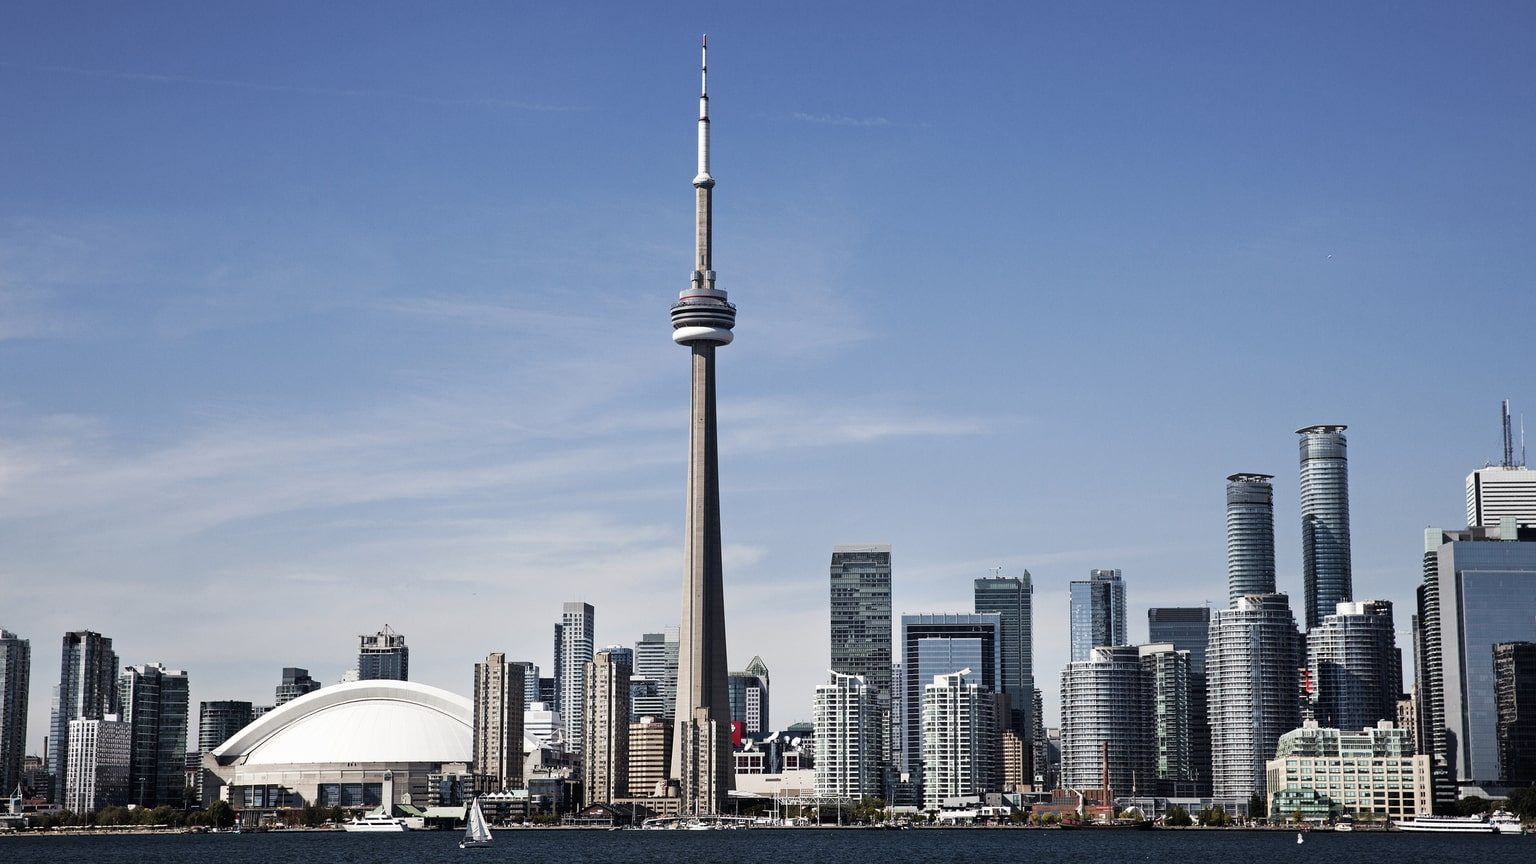 Toronto skyline showing the CN Tower